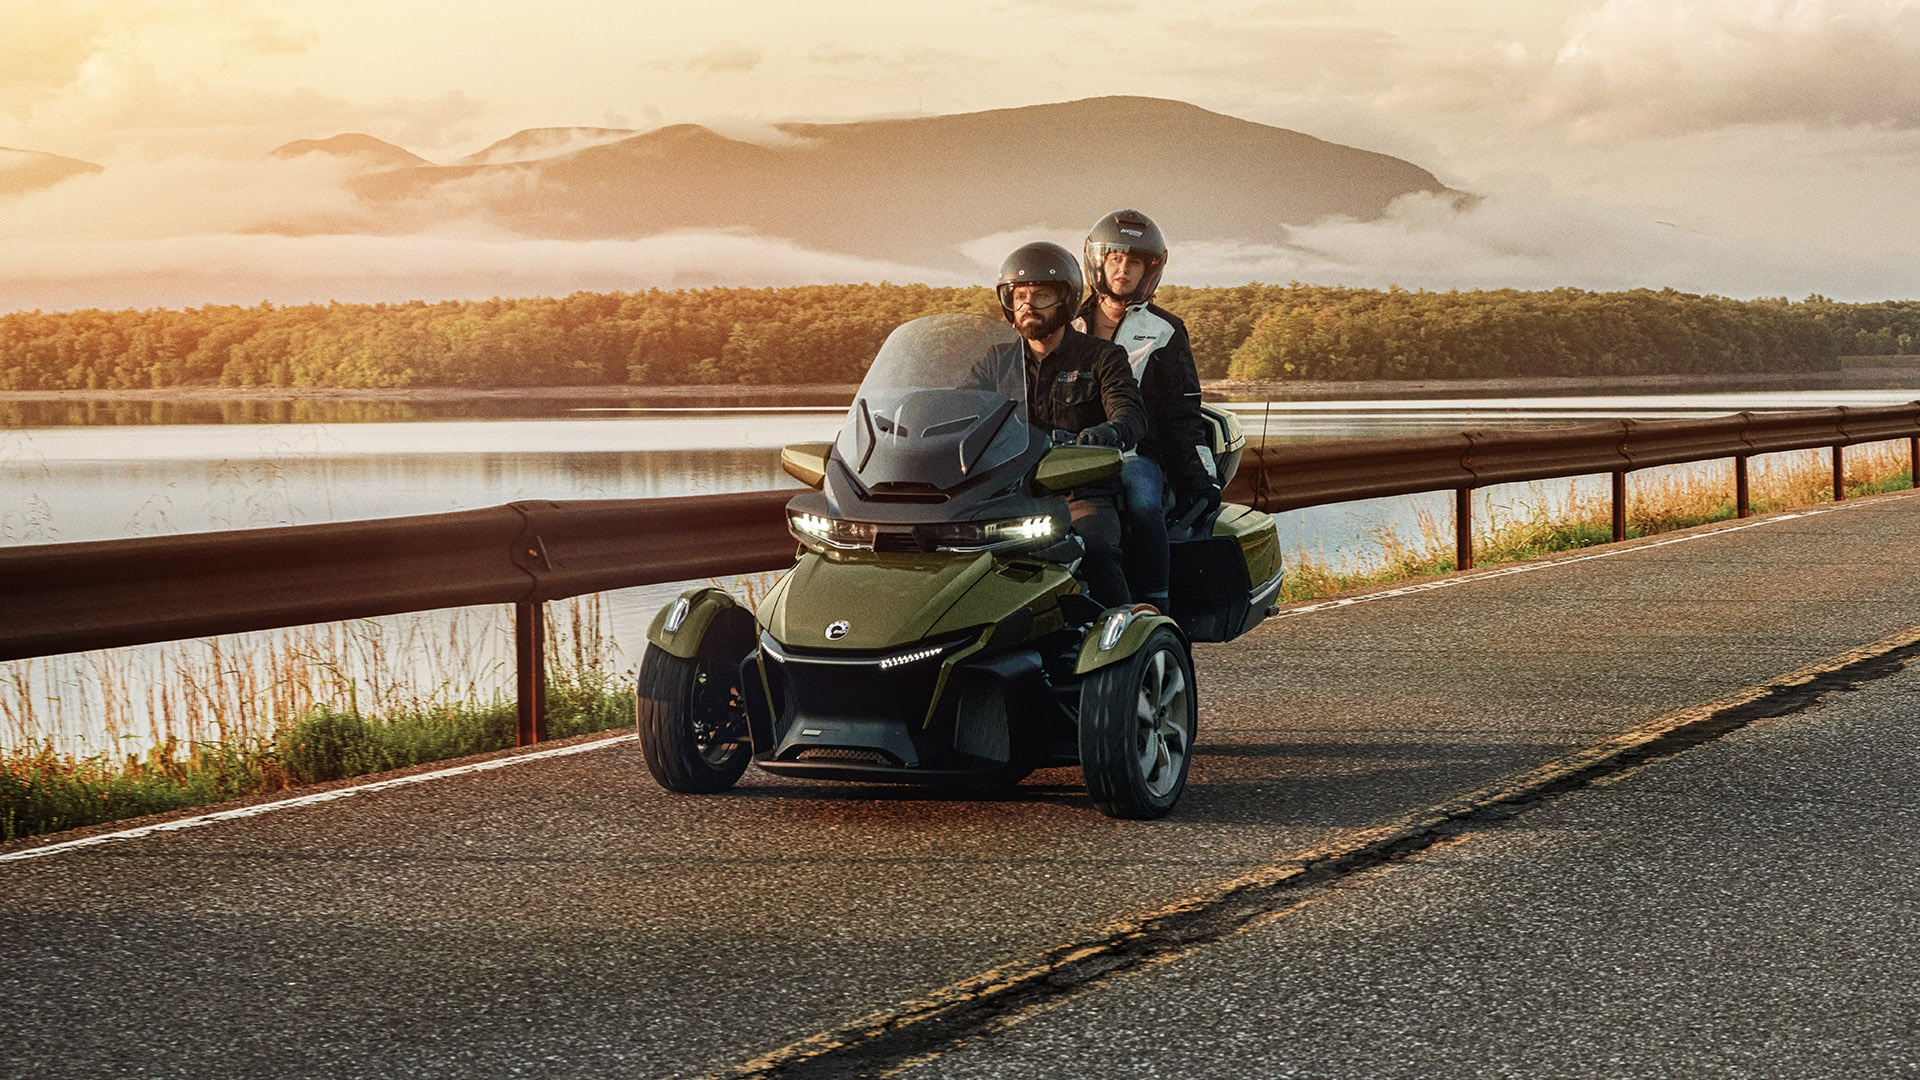 A man and a woman riding Can-Am Spyder 2021 near the lake